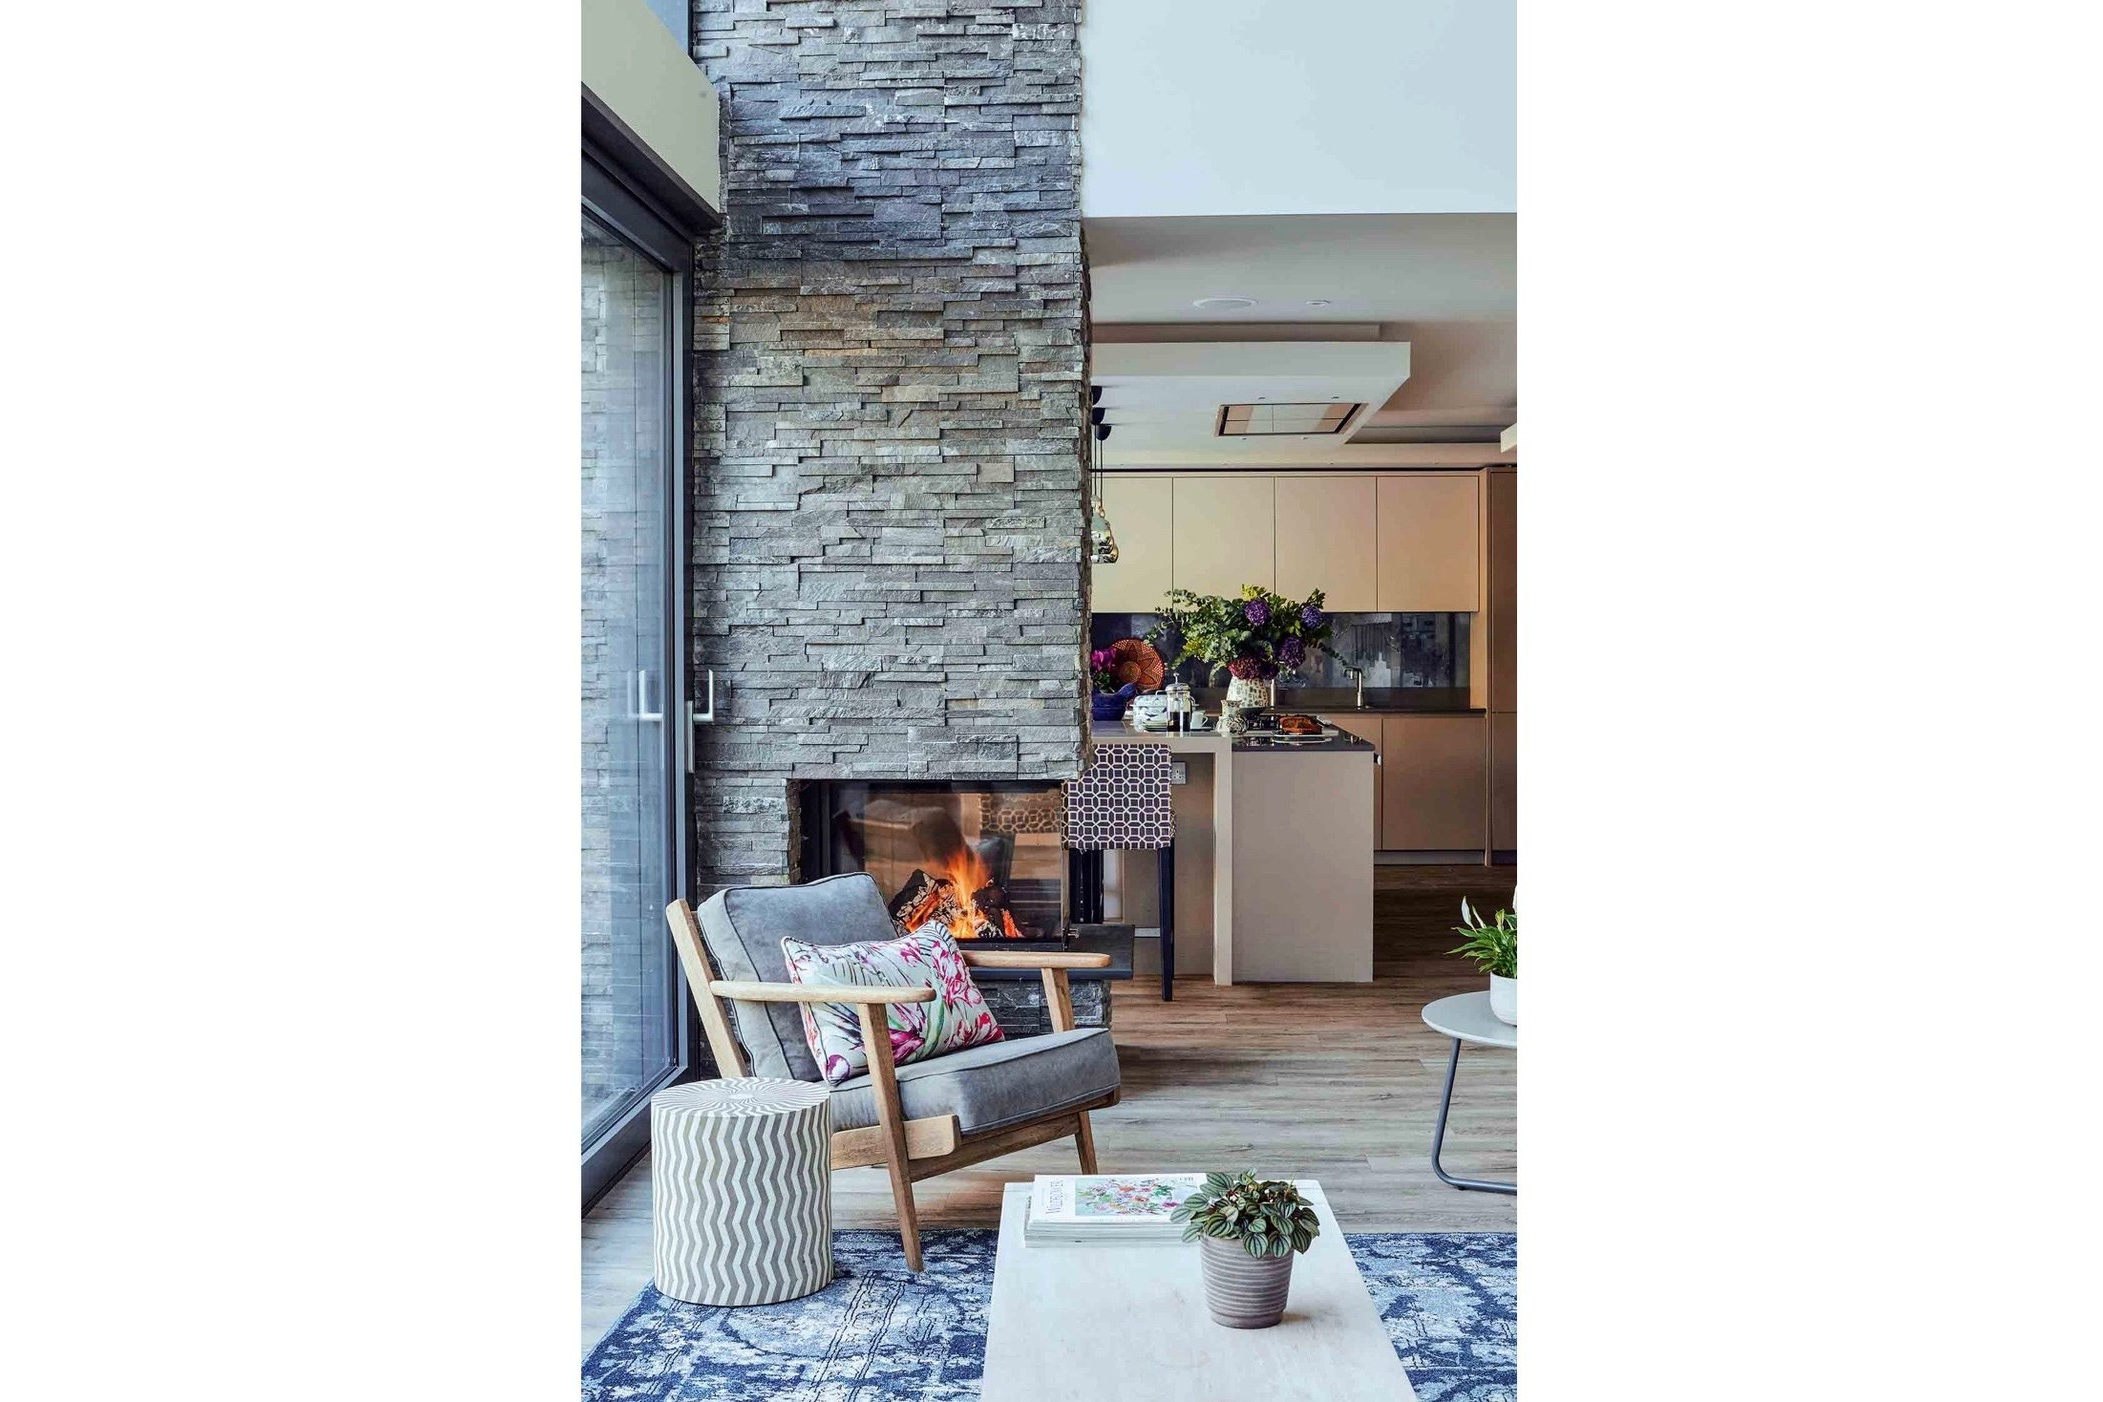 OBA_Beaconsfield-House_2_WH.jpg